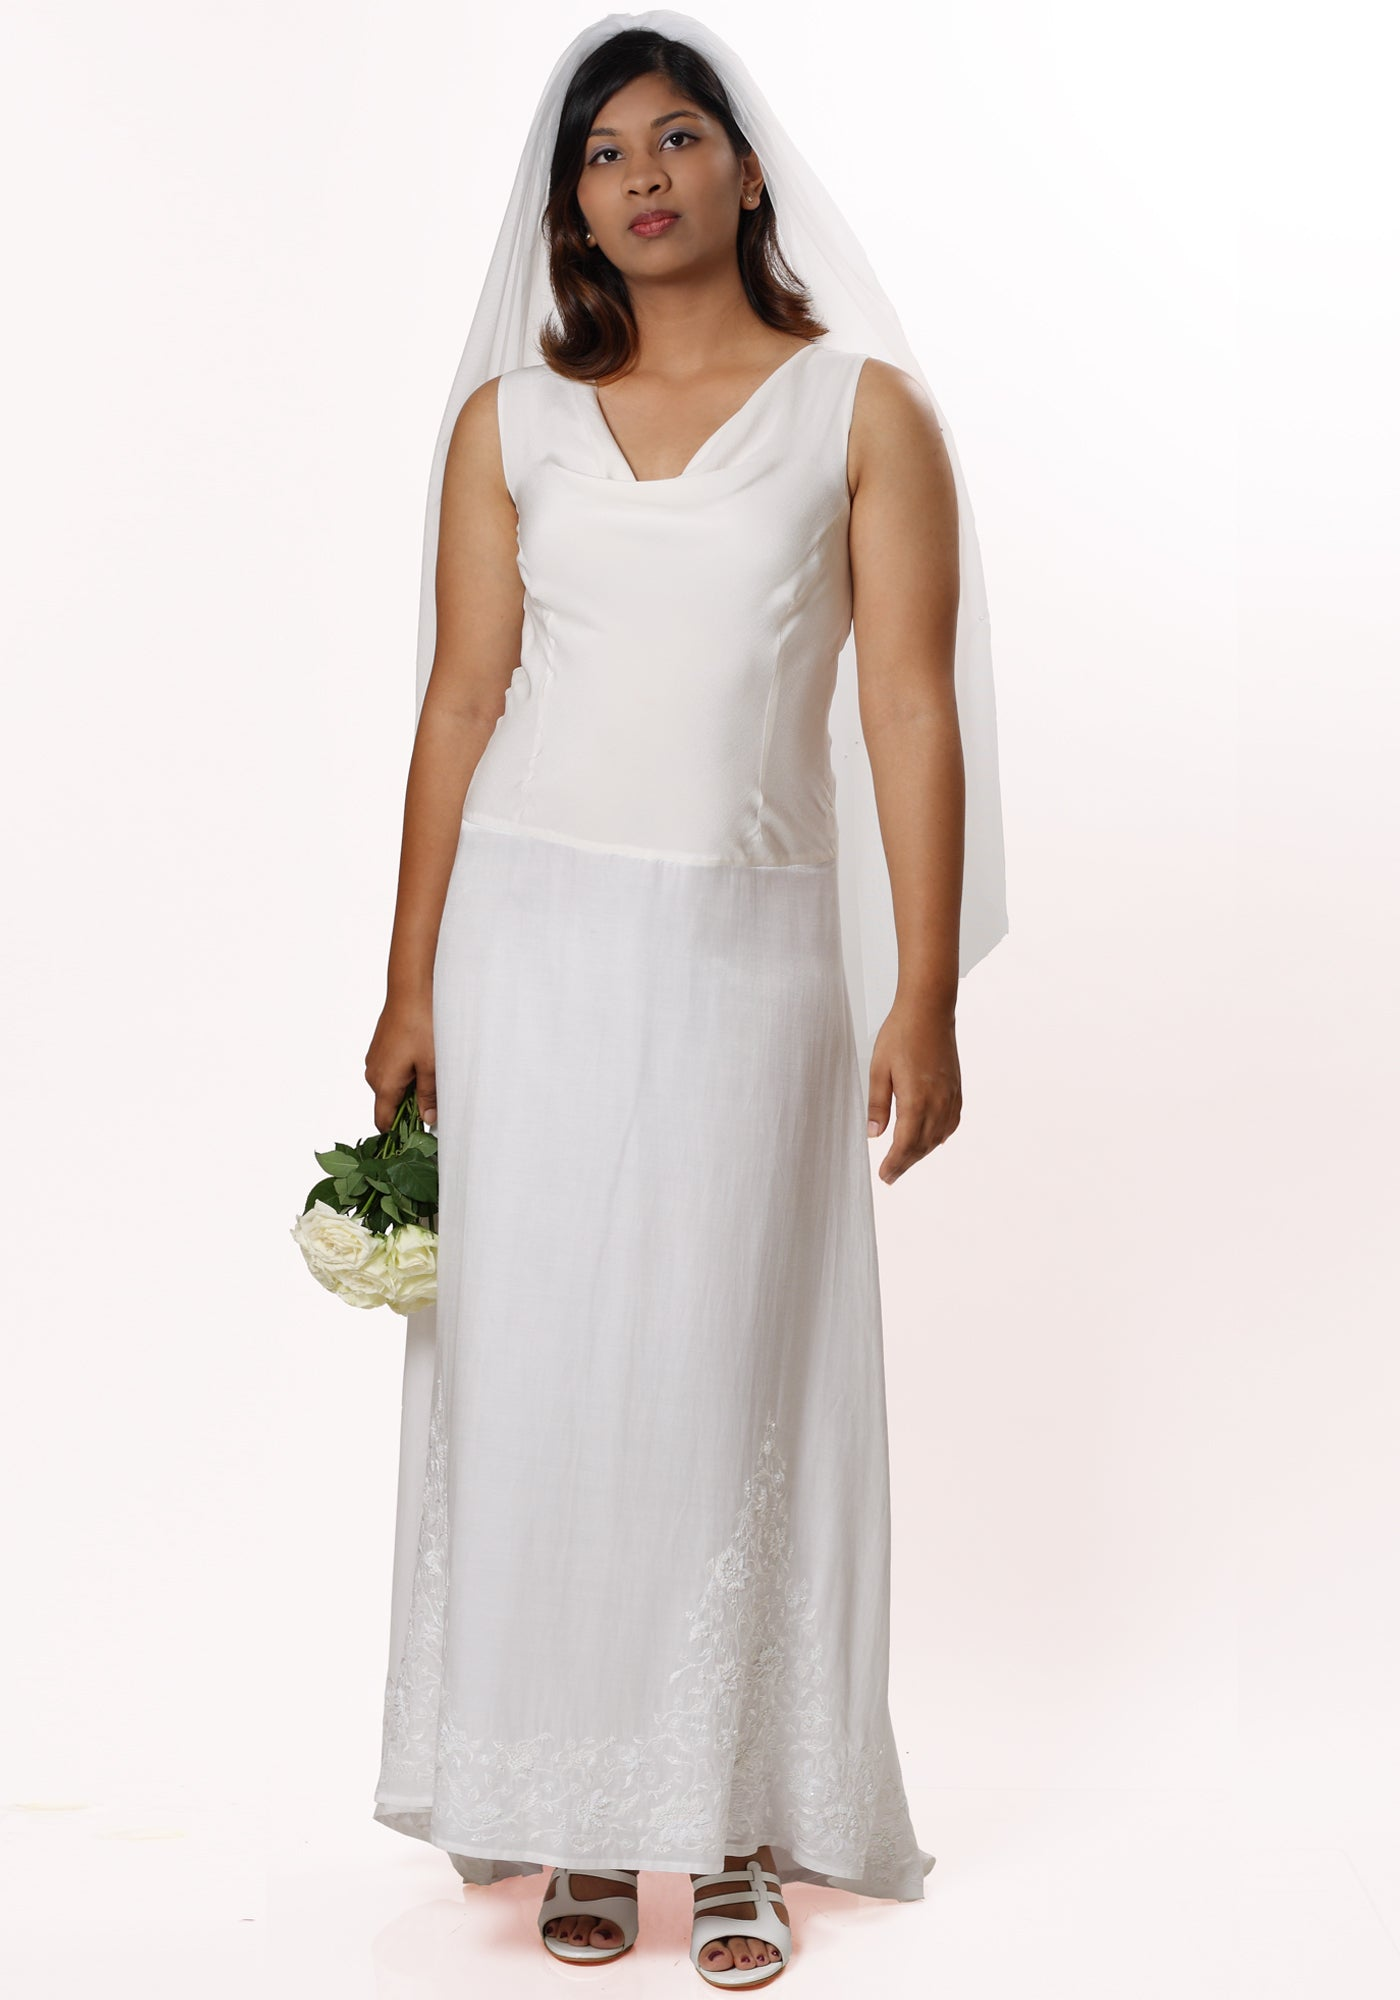 Angelina\'s Cowl Neck Embroidered Wedding Dress in White Silk